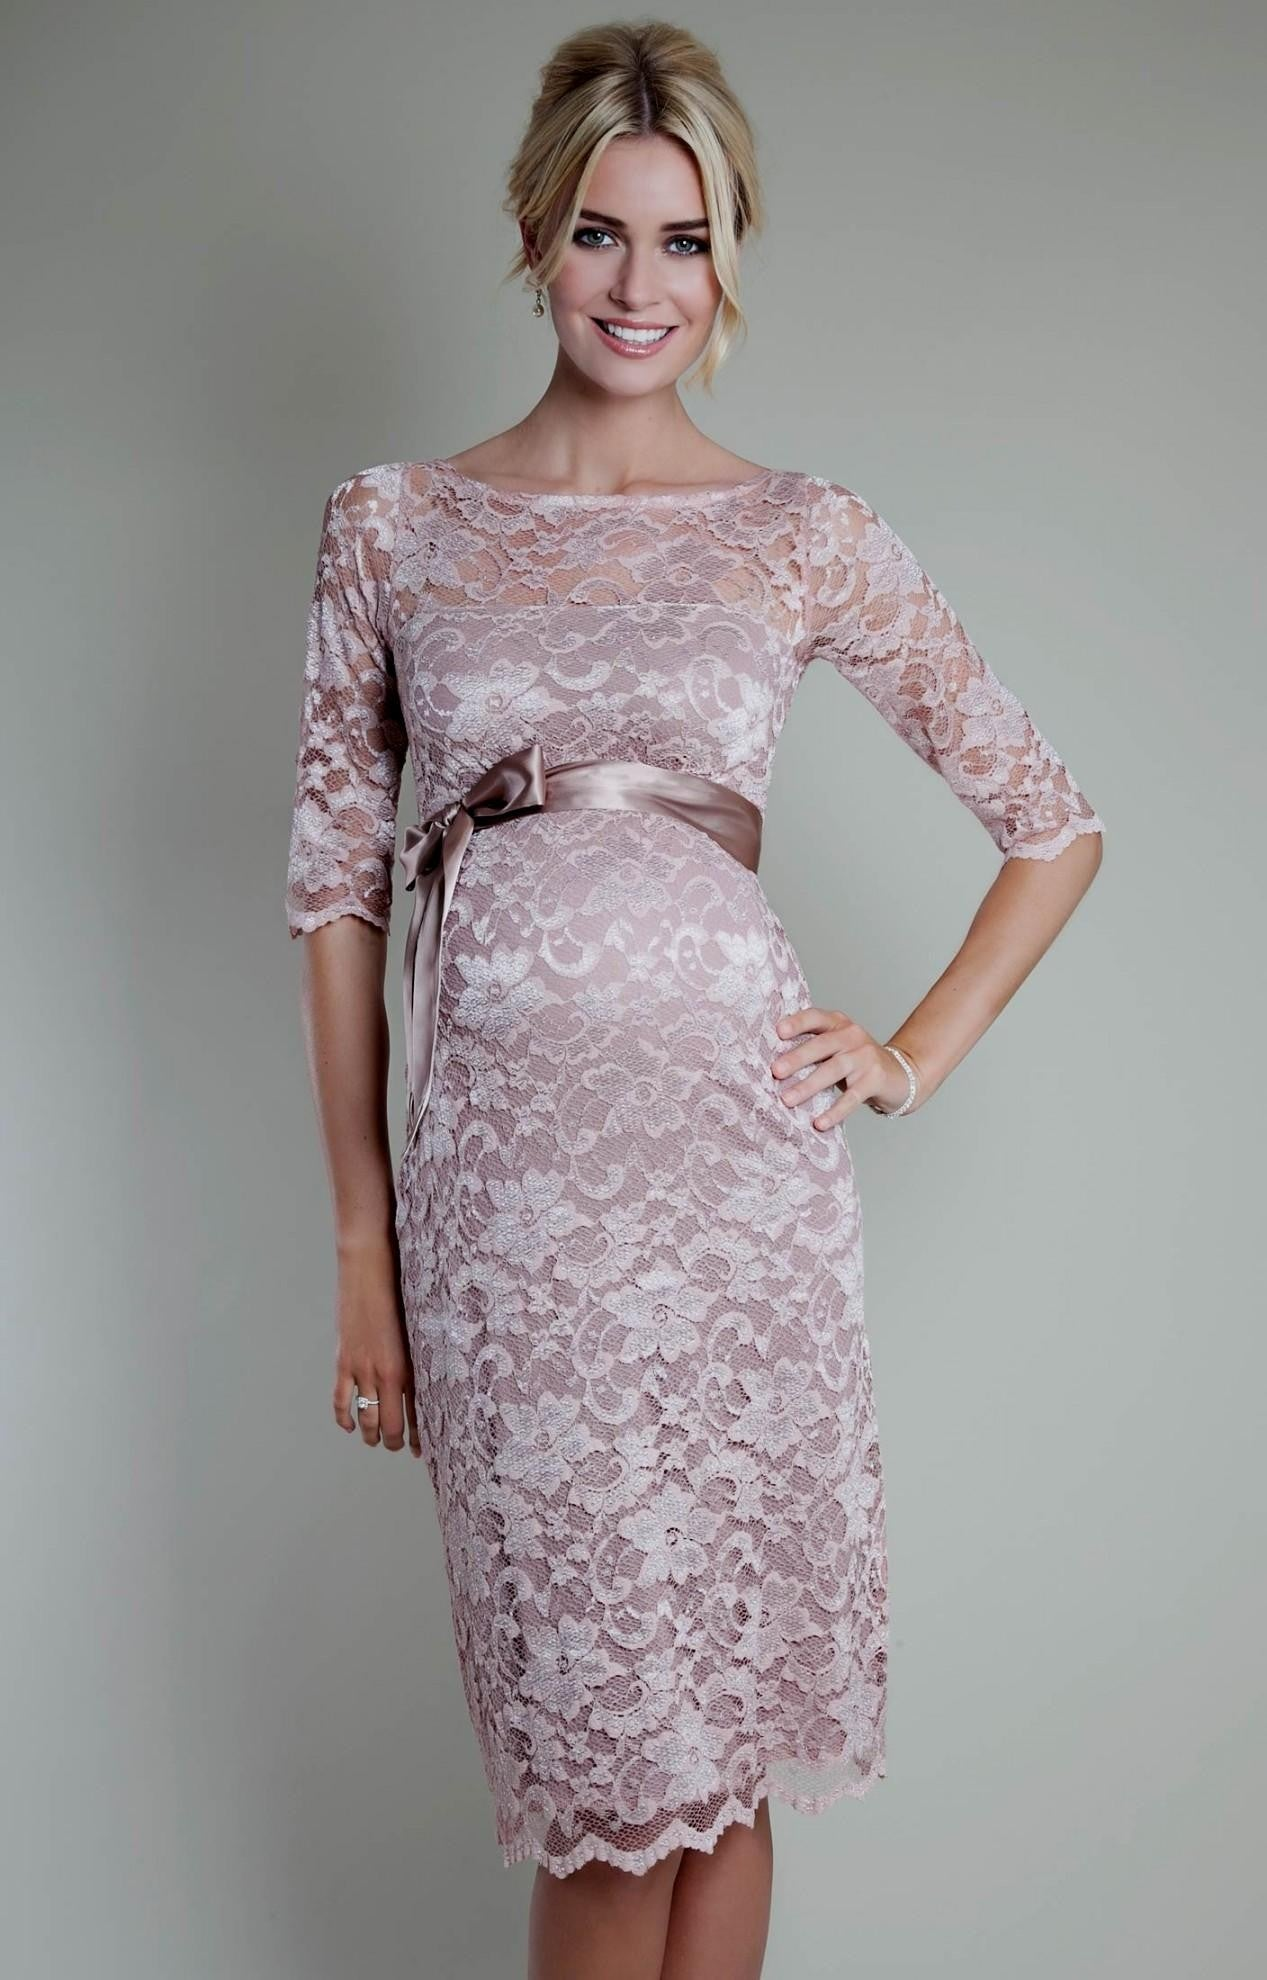 Tiffany rose amelia formal lace maternity dress canada free ship ret tiffany rose amelia formal lace maternity dress ombrellifo Choice Image